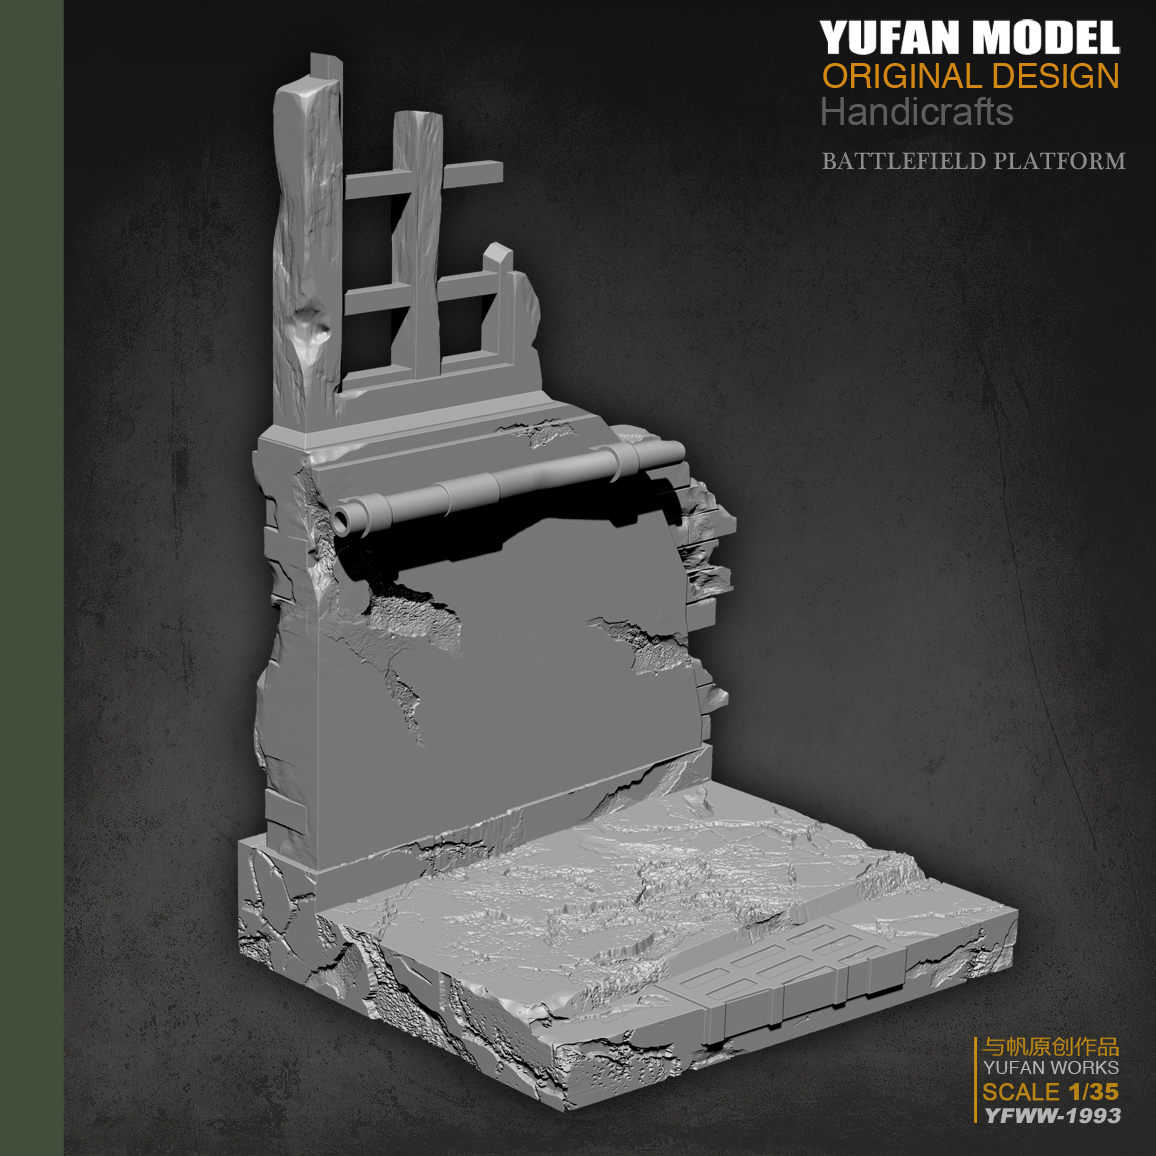 Yufan Model Original 1/35 Resin Soldier Broken Wall Platform Resin Figure Model Unmounted And Uncolored Yfww-1993